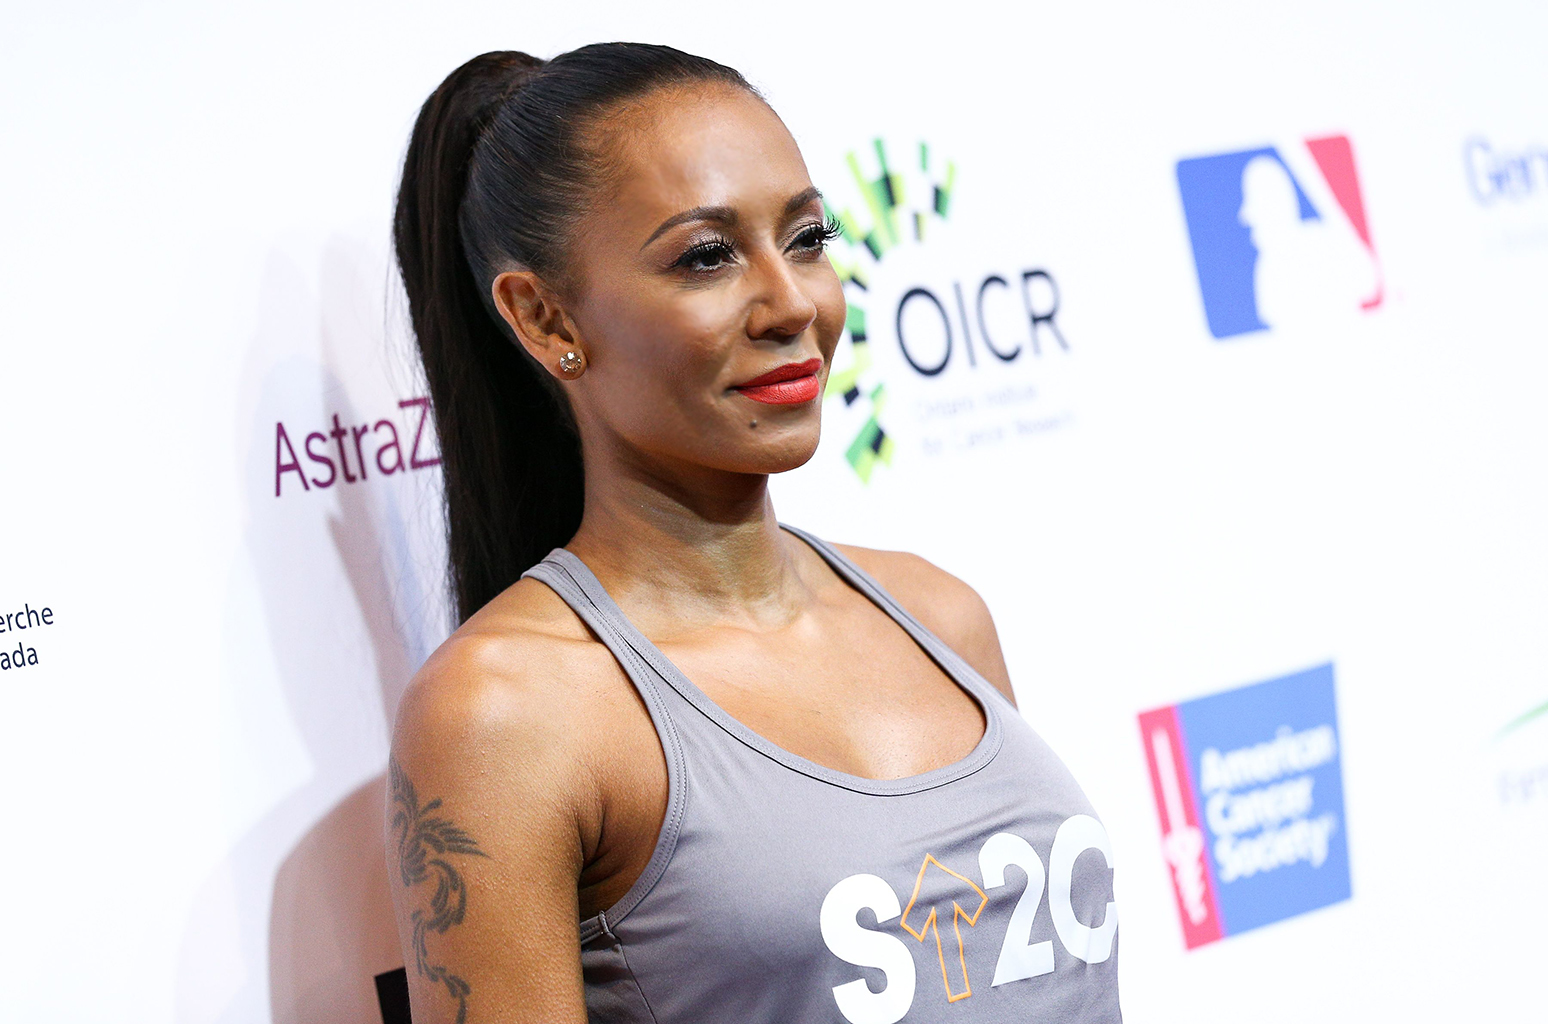 Mandatory Credit: Photo by John Salangsang/BFA/REX/Shutterstock (5895377hx) Melanie Brown Stand Up To Cancer event, Arrivals, Los Angeles, USA - 09 Sep 2016